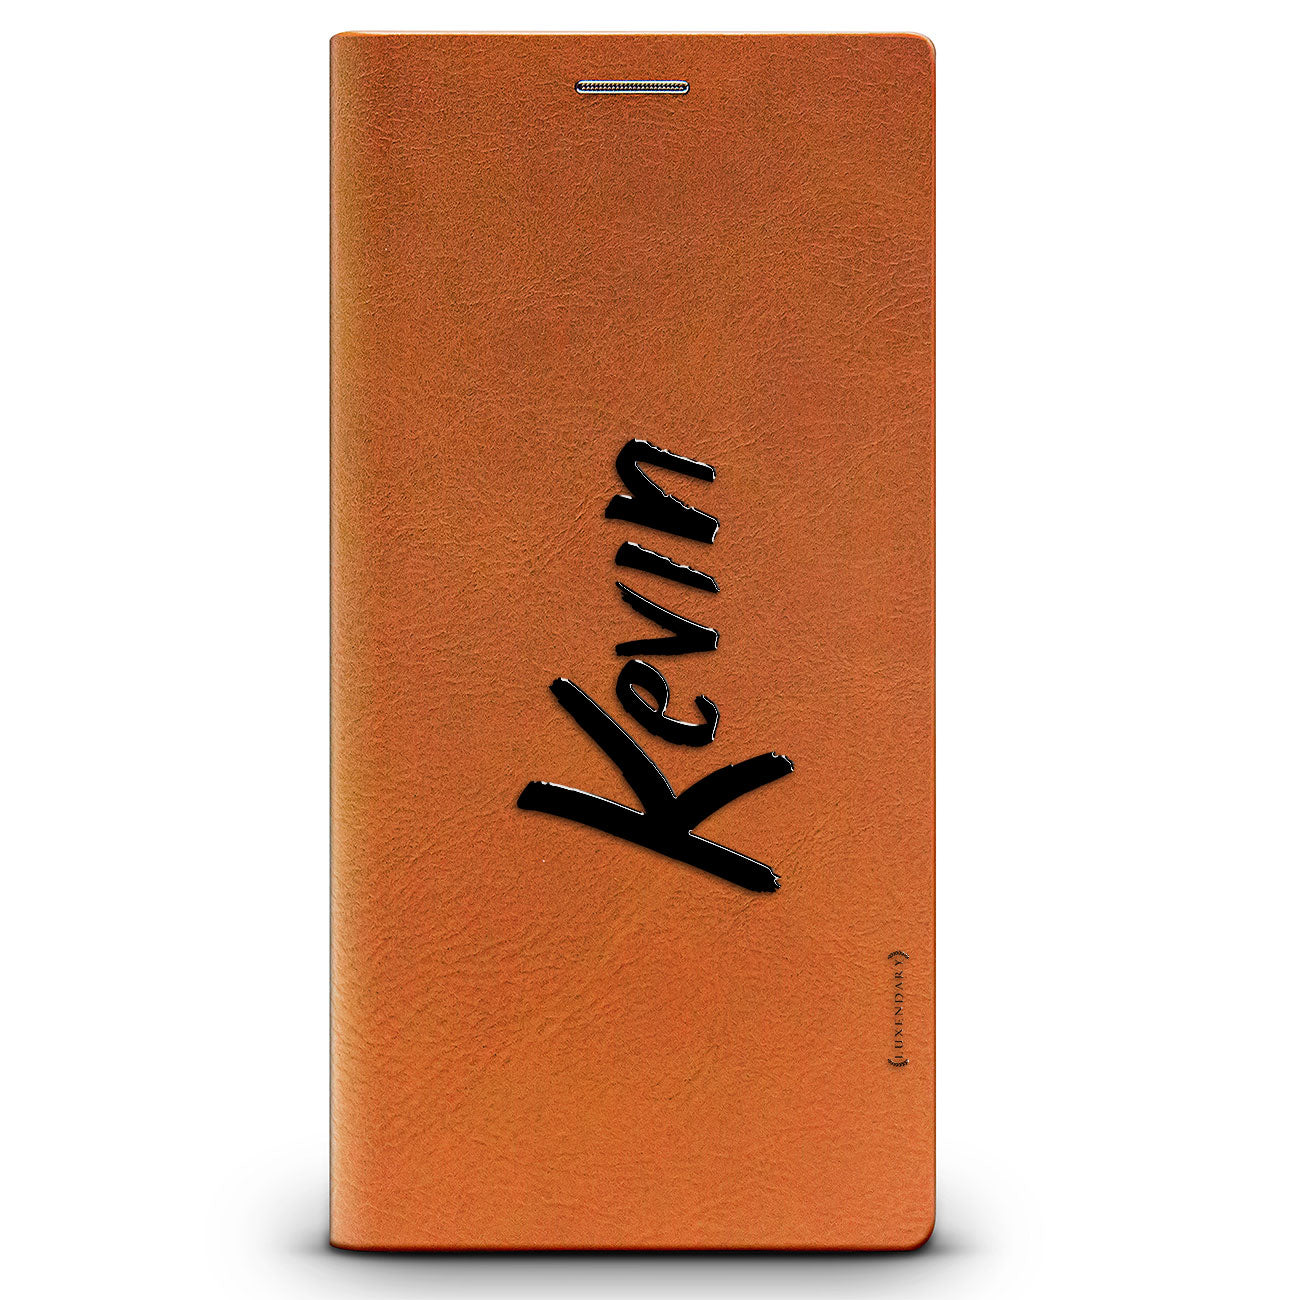 Kevin, Hand-Written First Name